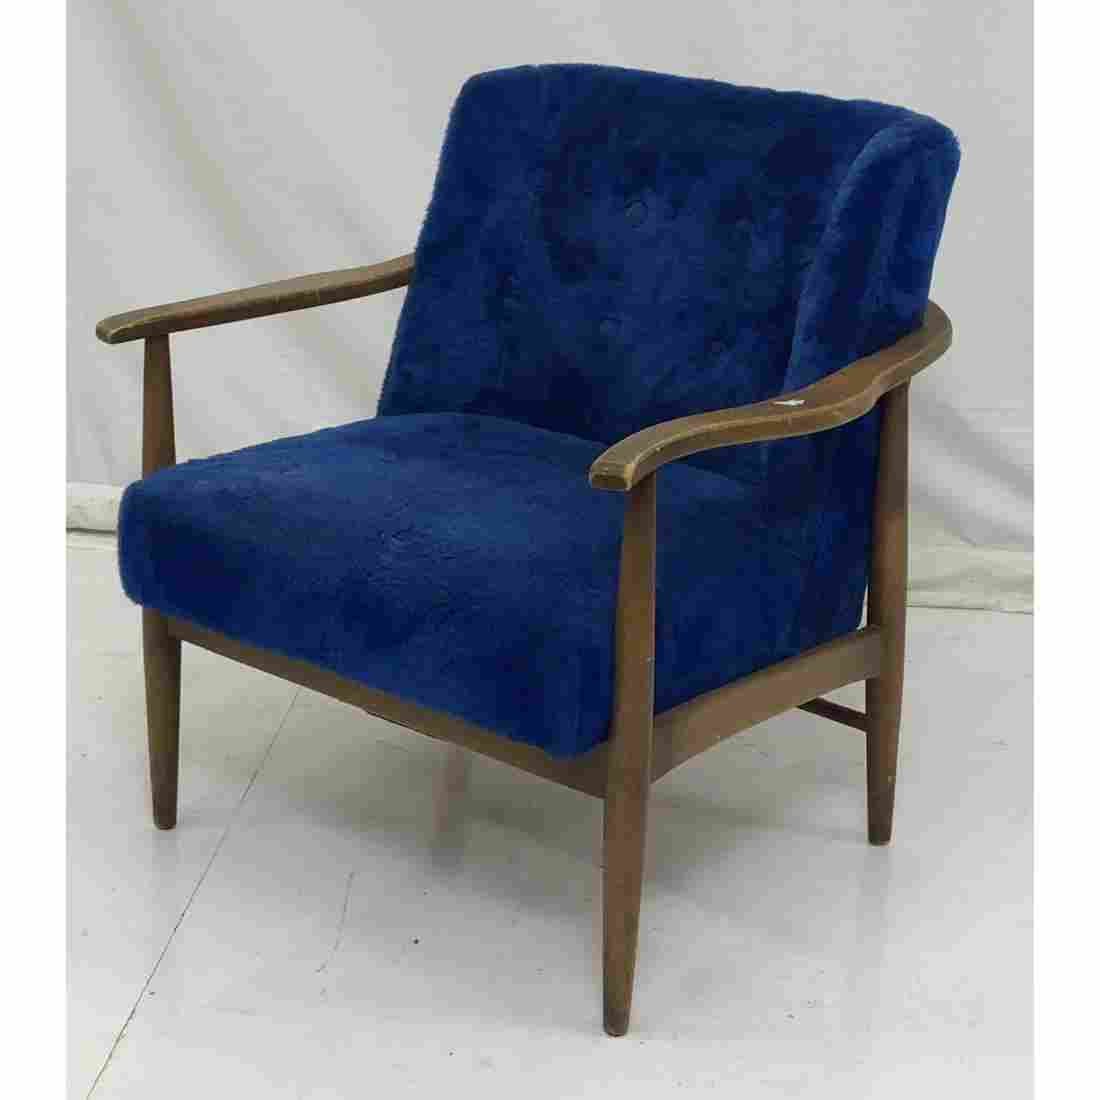 Blue Plush Upholstered Modernist Lounge Chair. Op